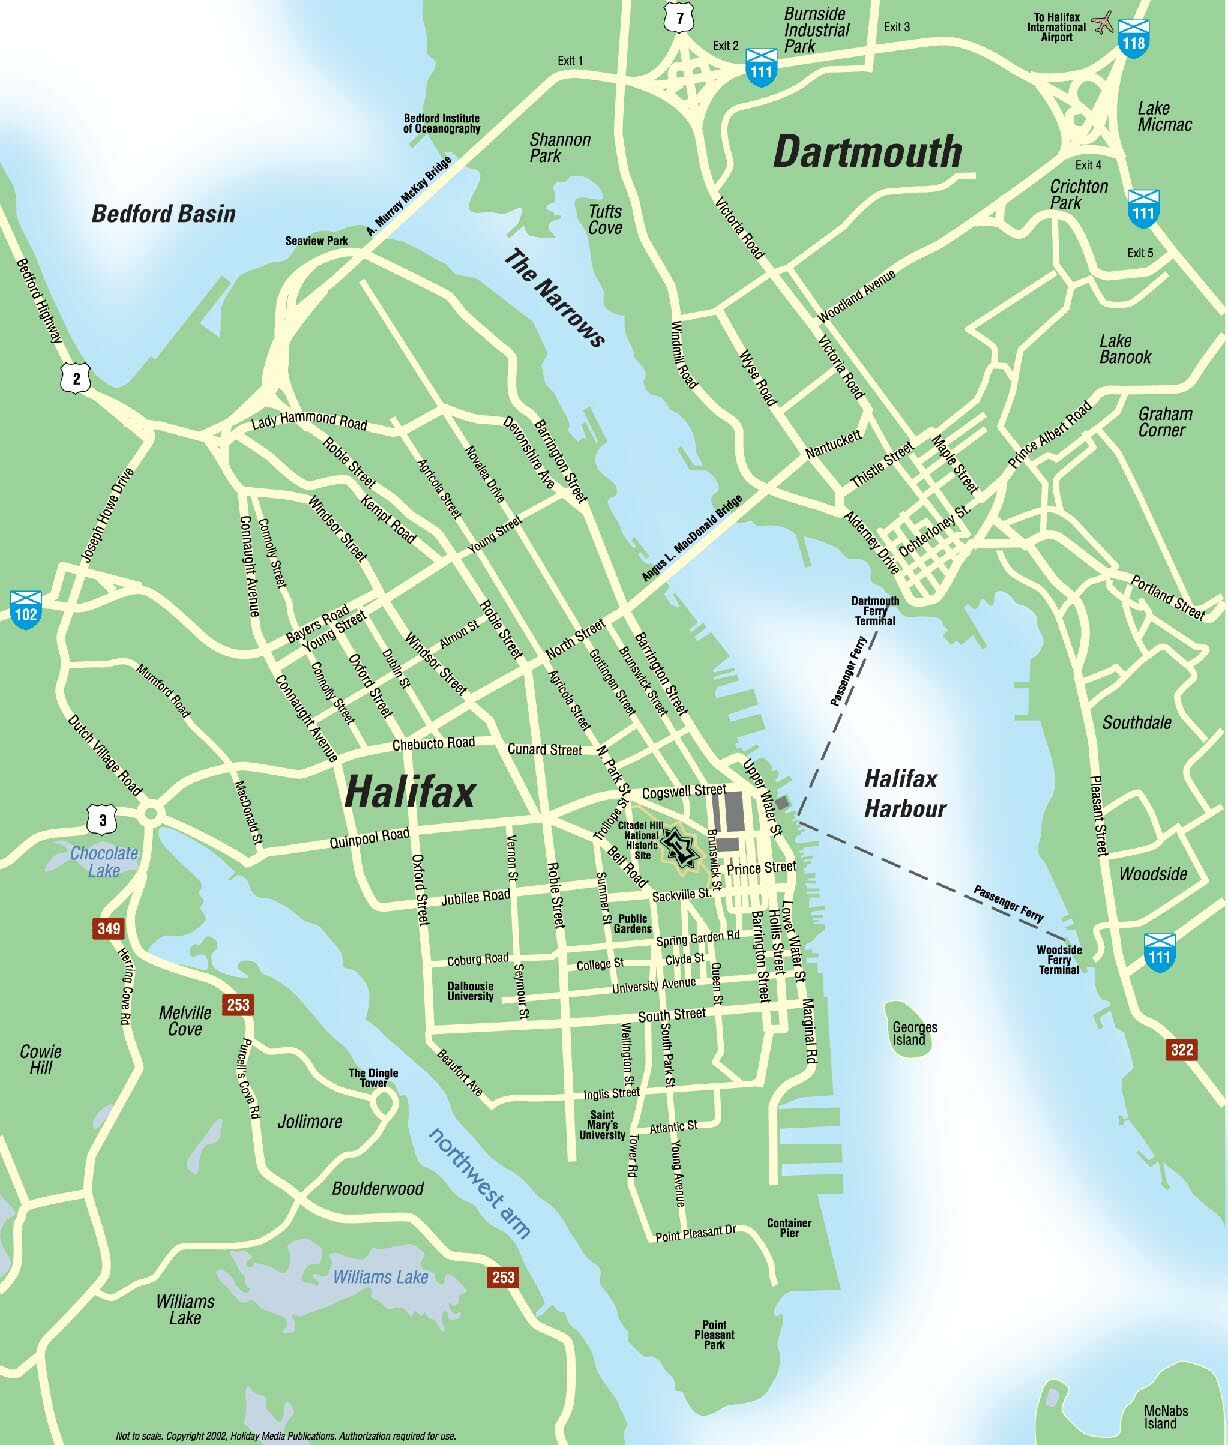 Halifax Area Map bedford basin mappery